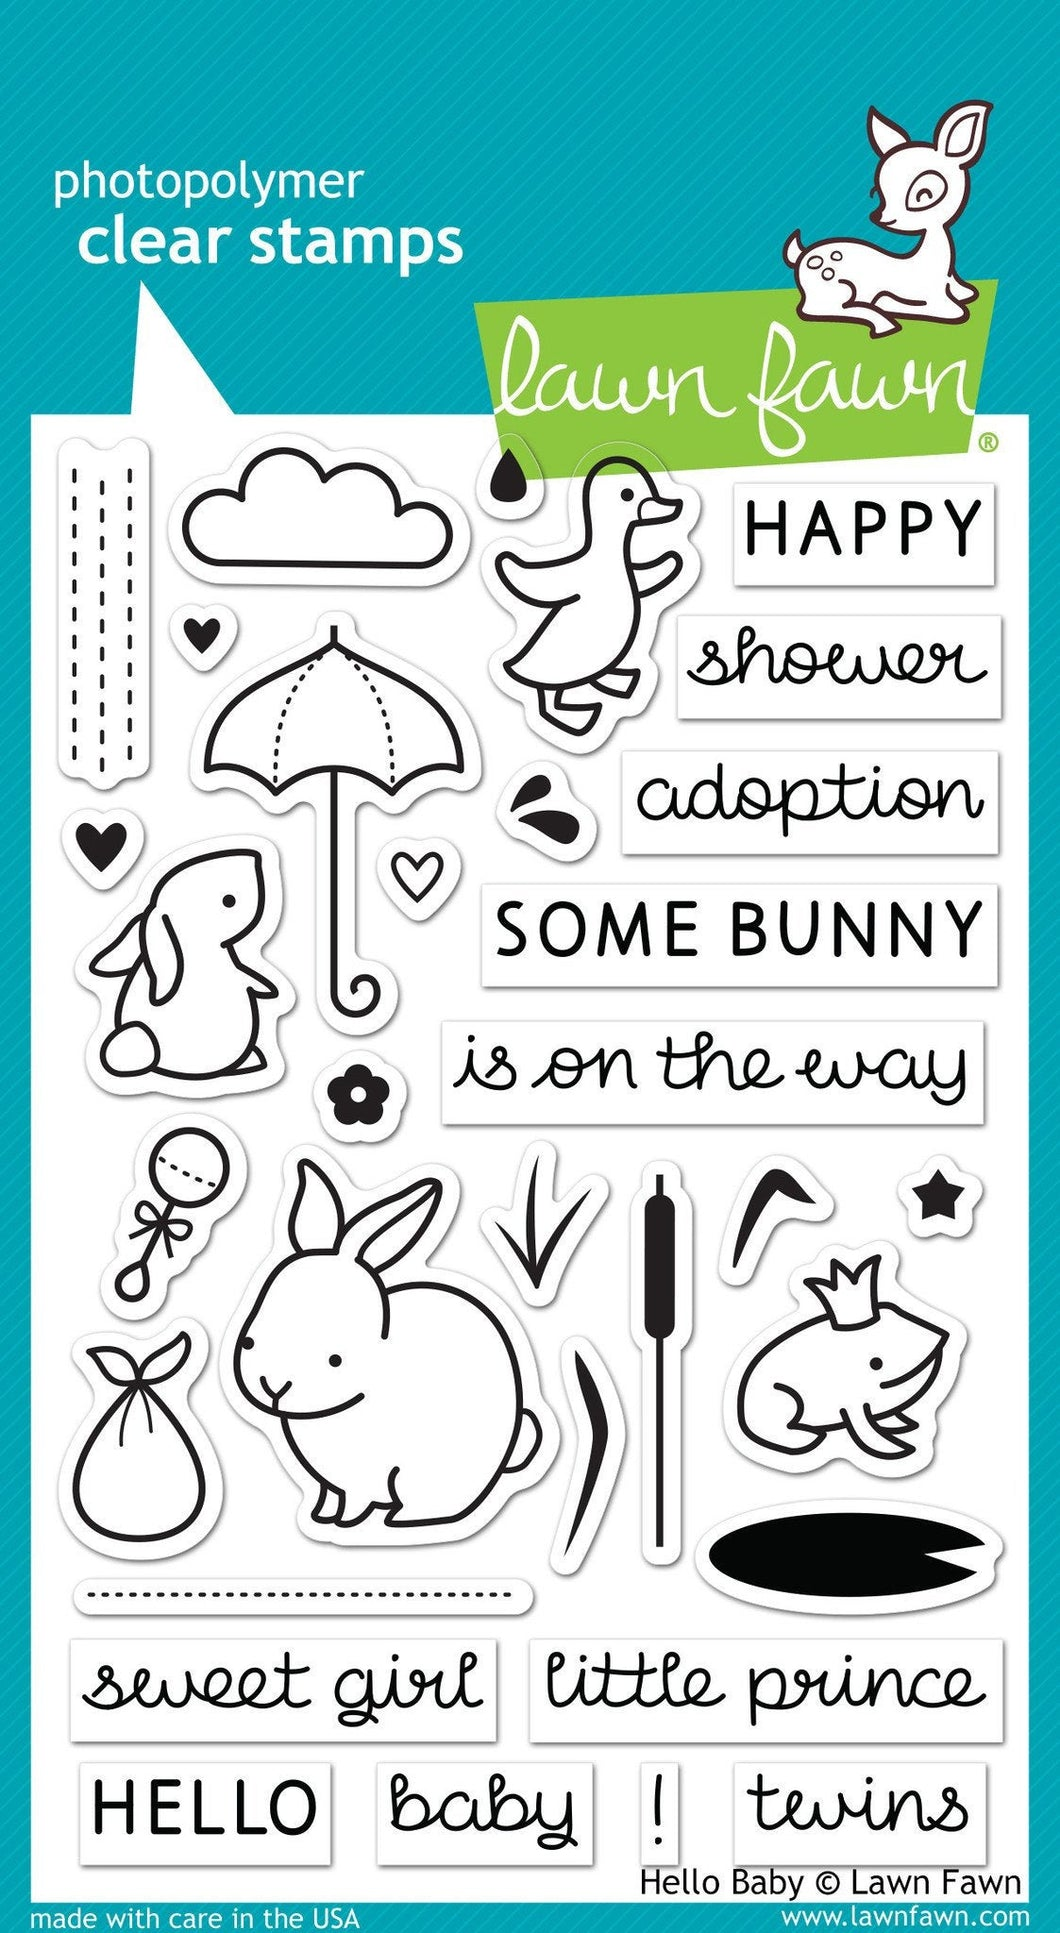 Lawn Fawn - hello baby - clear stamp set